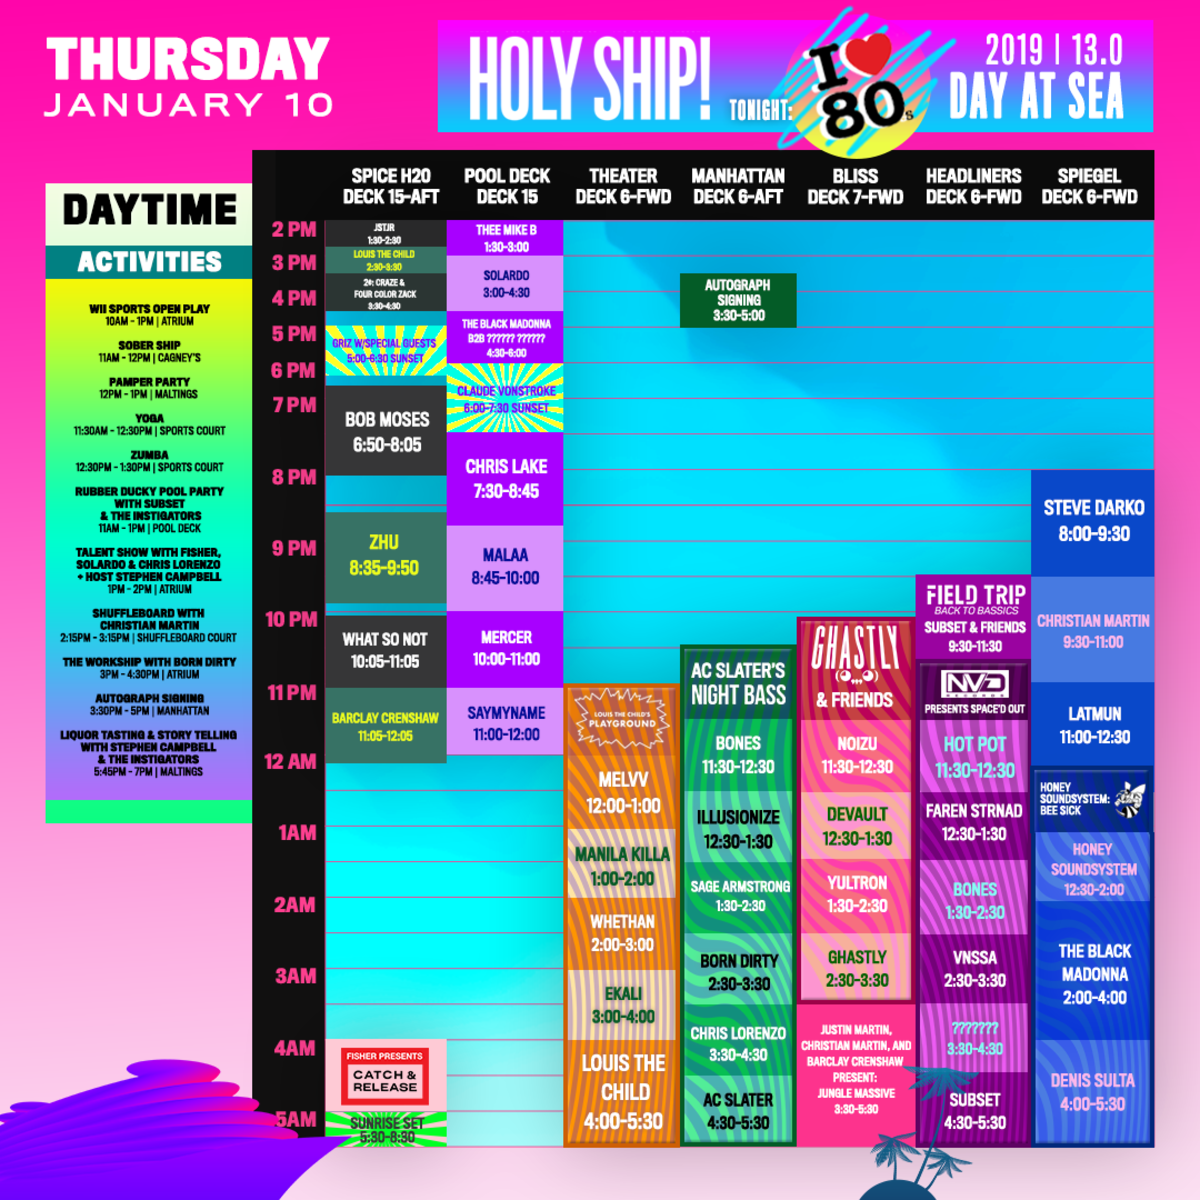 holy_ship_2019_lu_set_times_social_assets_day_2_13.0_1080x1080_r03